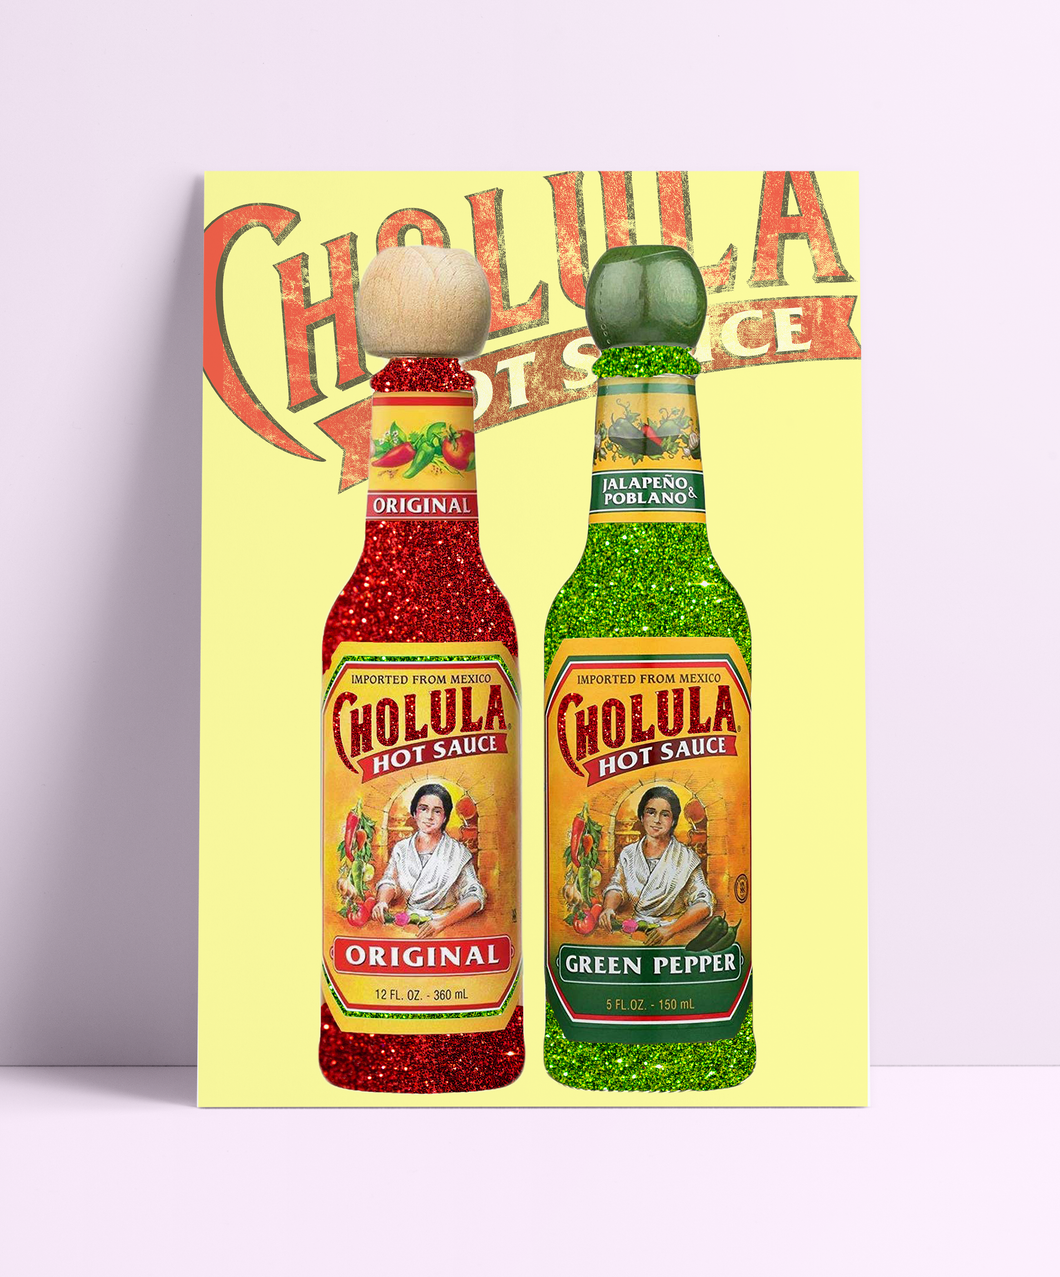 Cholula Hot Sauce Wall Print